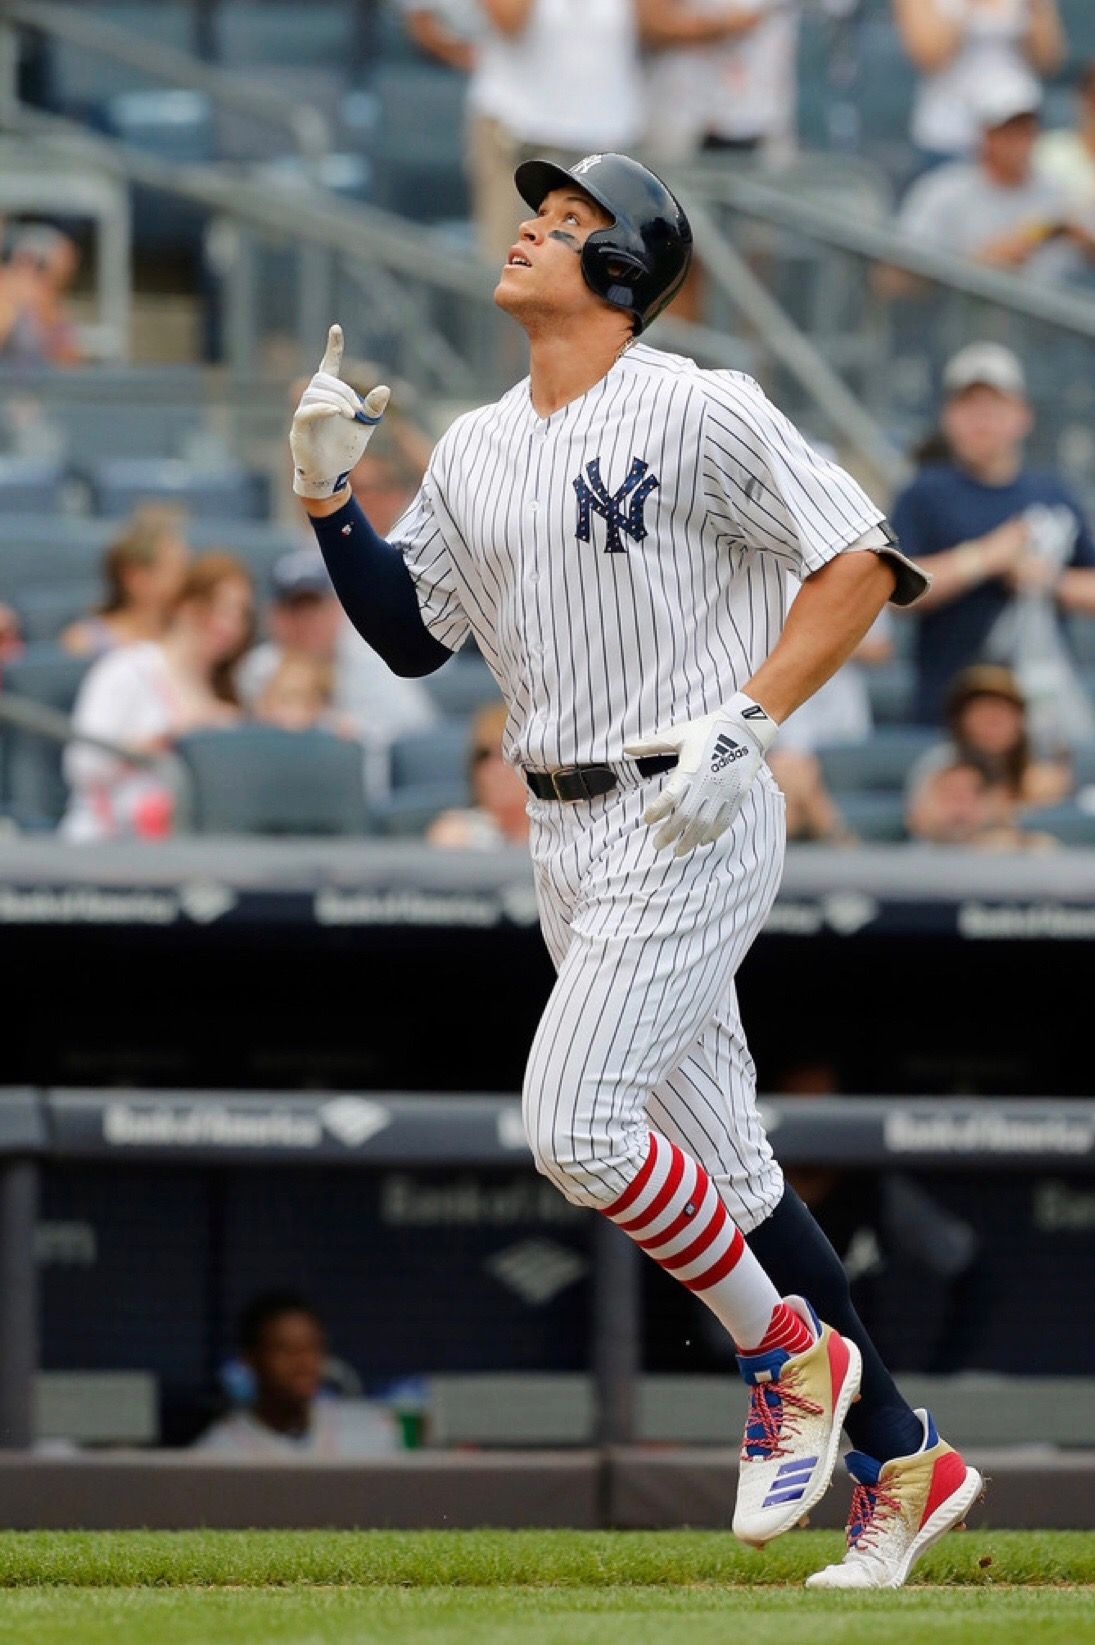 Home Run 24 Happy 4th Of July New York Yankees Ny Yankees Yankees Baseball